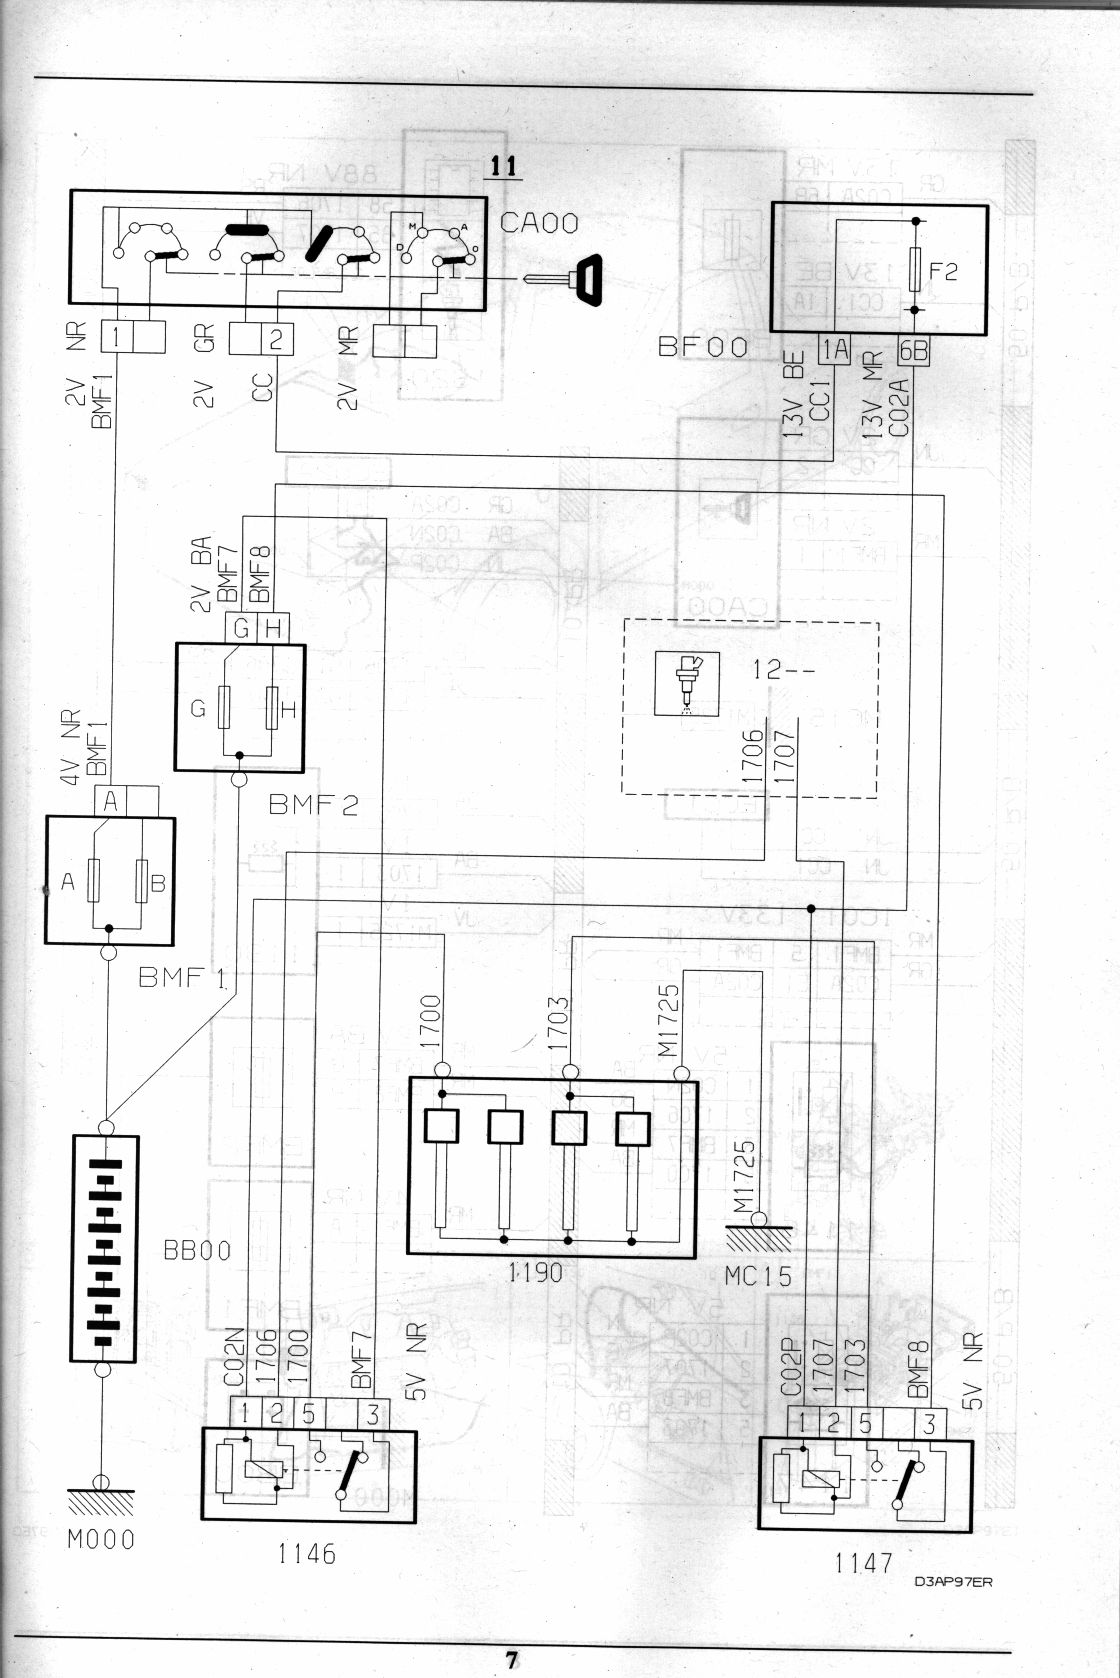 citroen berlingo wiring diagram pdf 567c citroen xsara picasso fuse box pdf wiring resources  567c citroen xsara picasso fuse box pdf